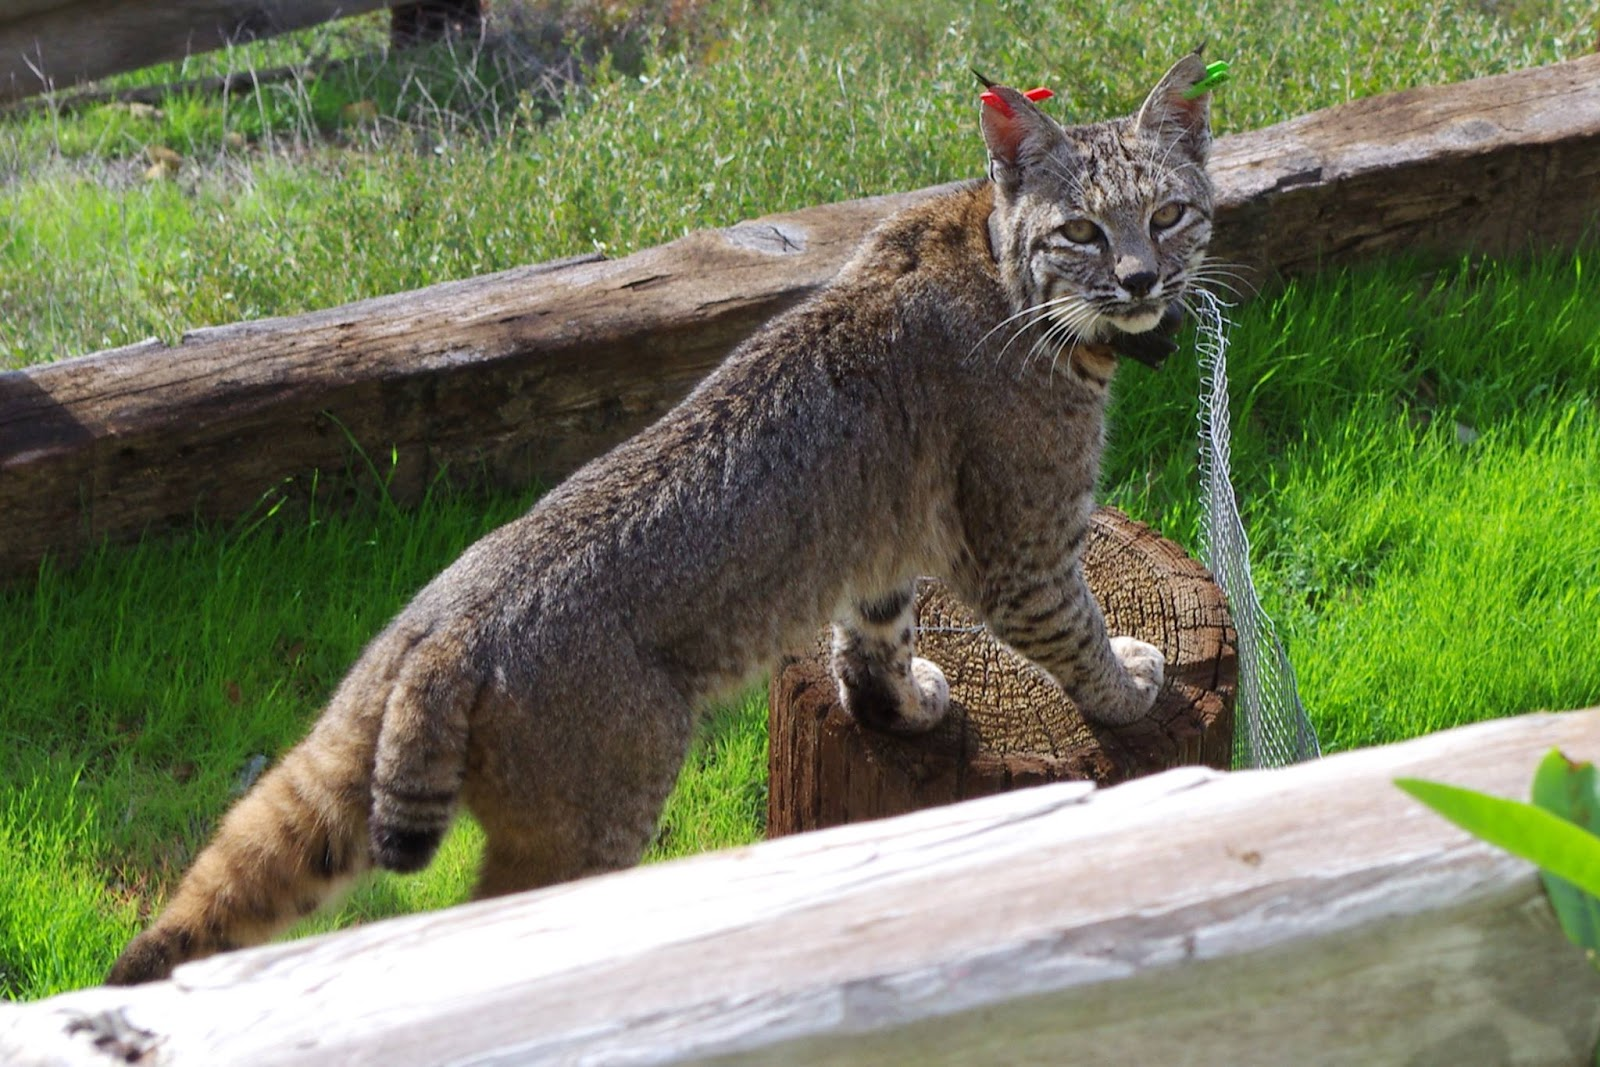 Merveilleux Backyard Bobcat Santa Monica Mountains